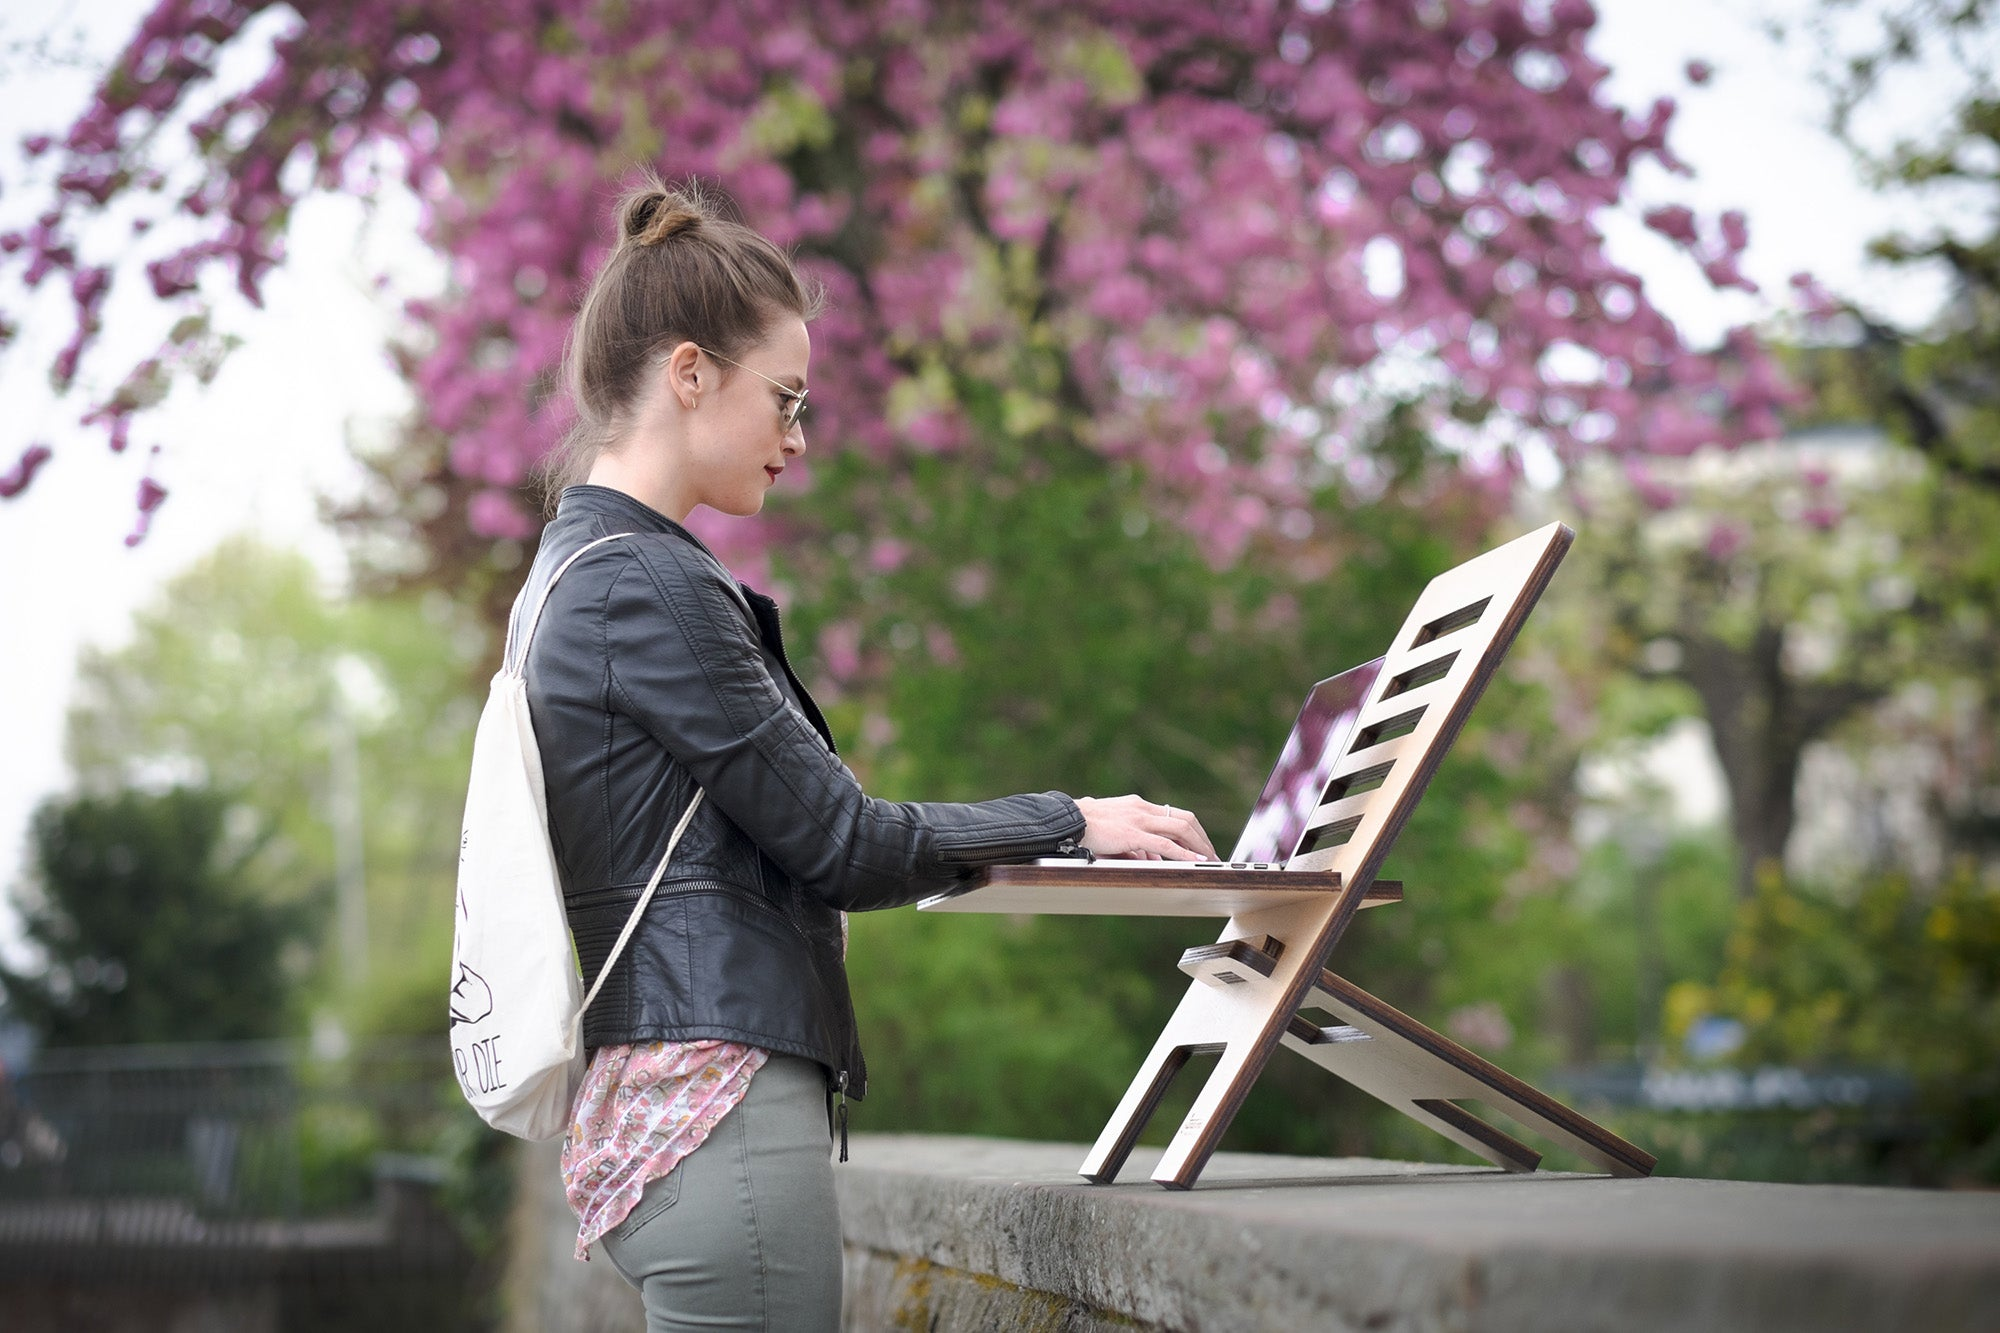 A woman outside, using the best portable wifi, with a white backpack working on a laptop placed on a folding laptop stand.